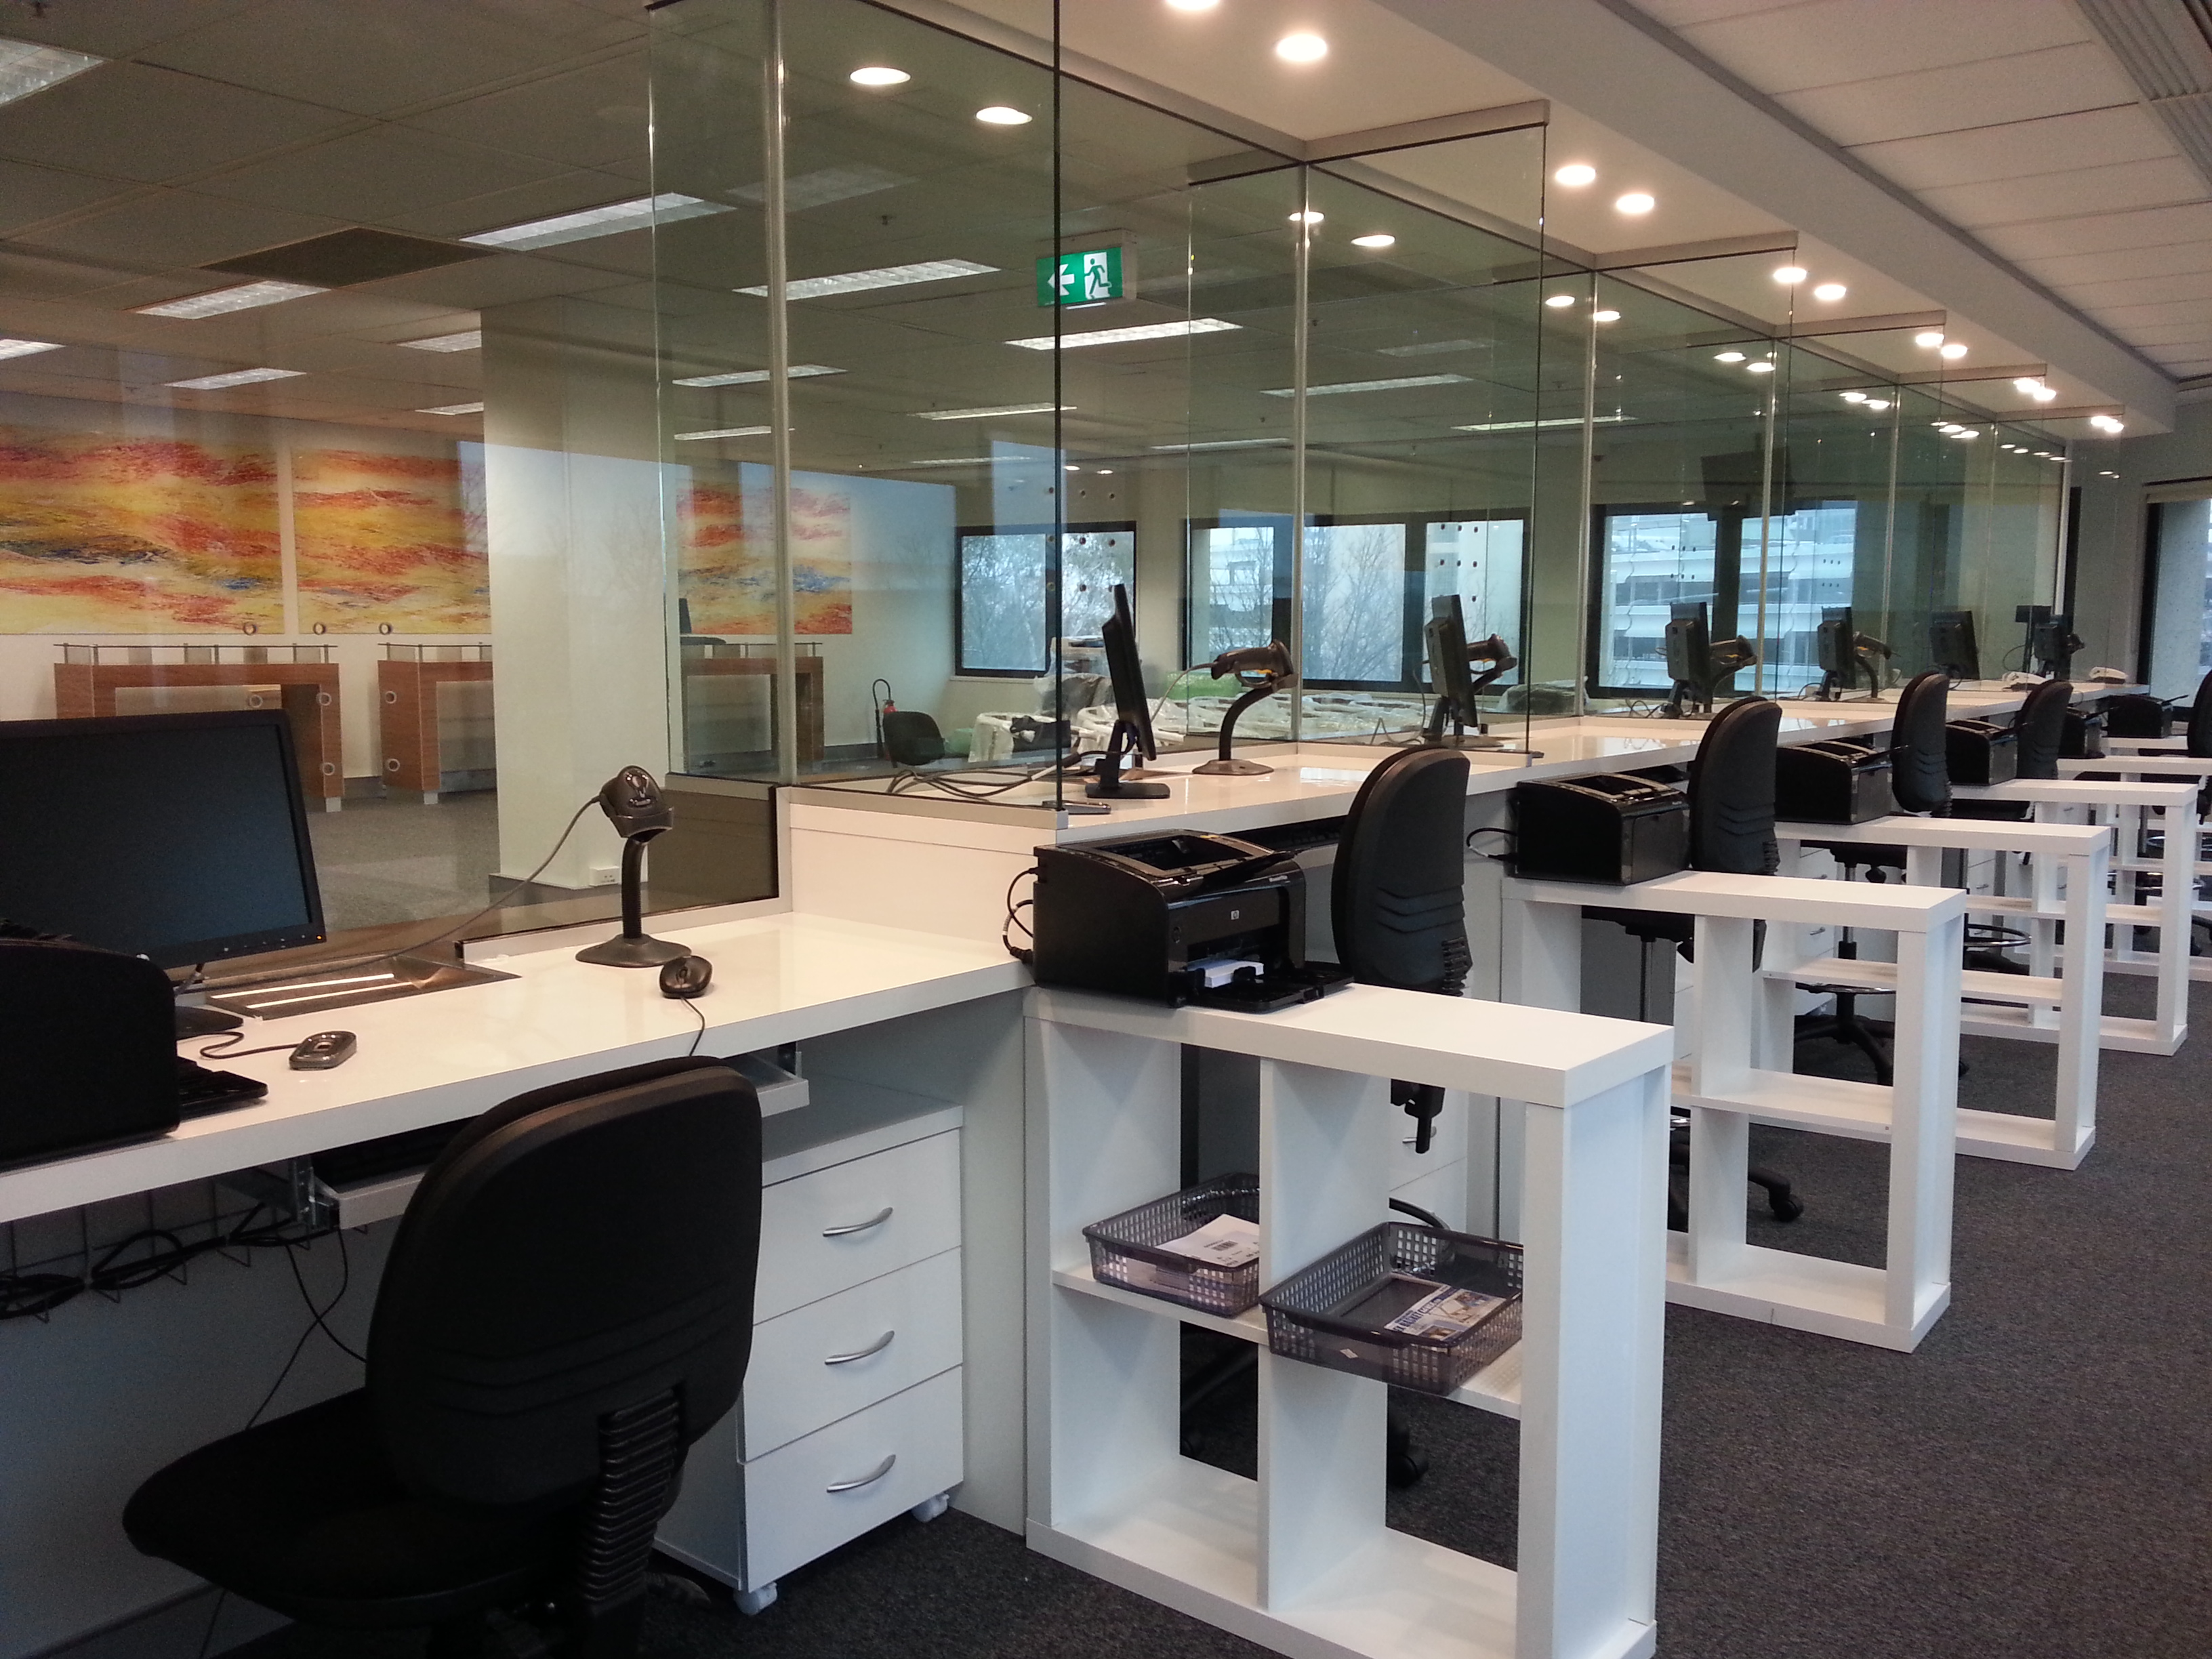 The Coming Operation Of Chinese Visa Application Service Centre In Canberra